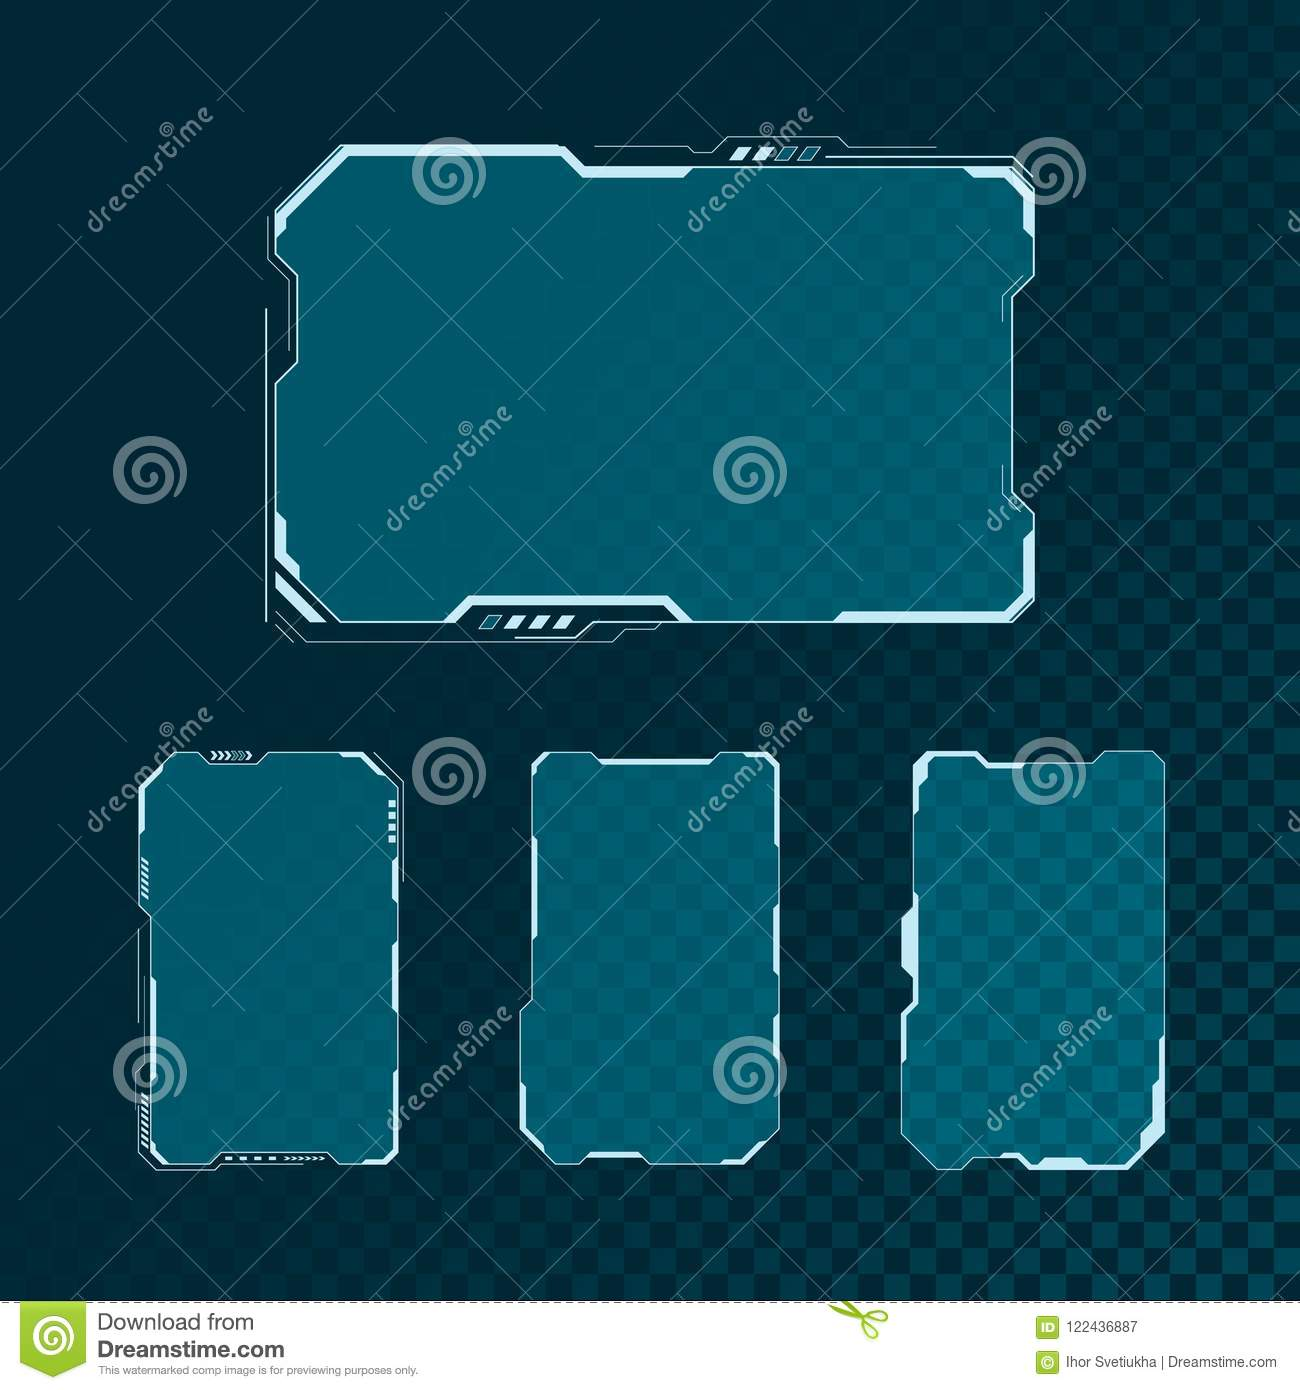 HUD futuristic user interface screen elements set. Abstract control panel layout design. Sci fi virtual tech display. Vector